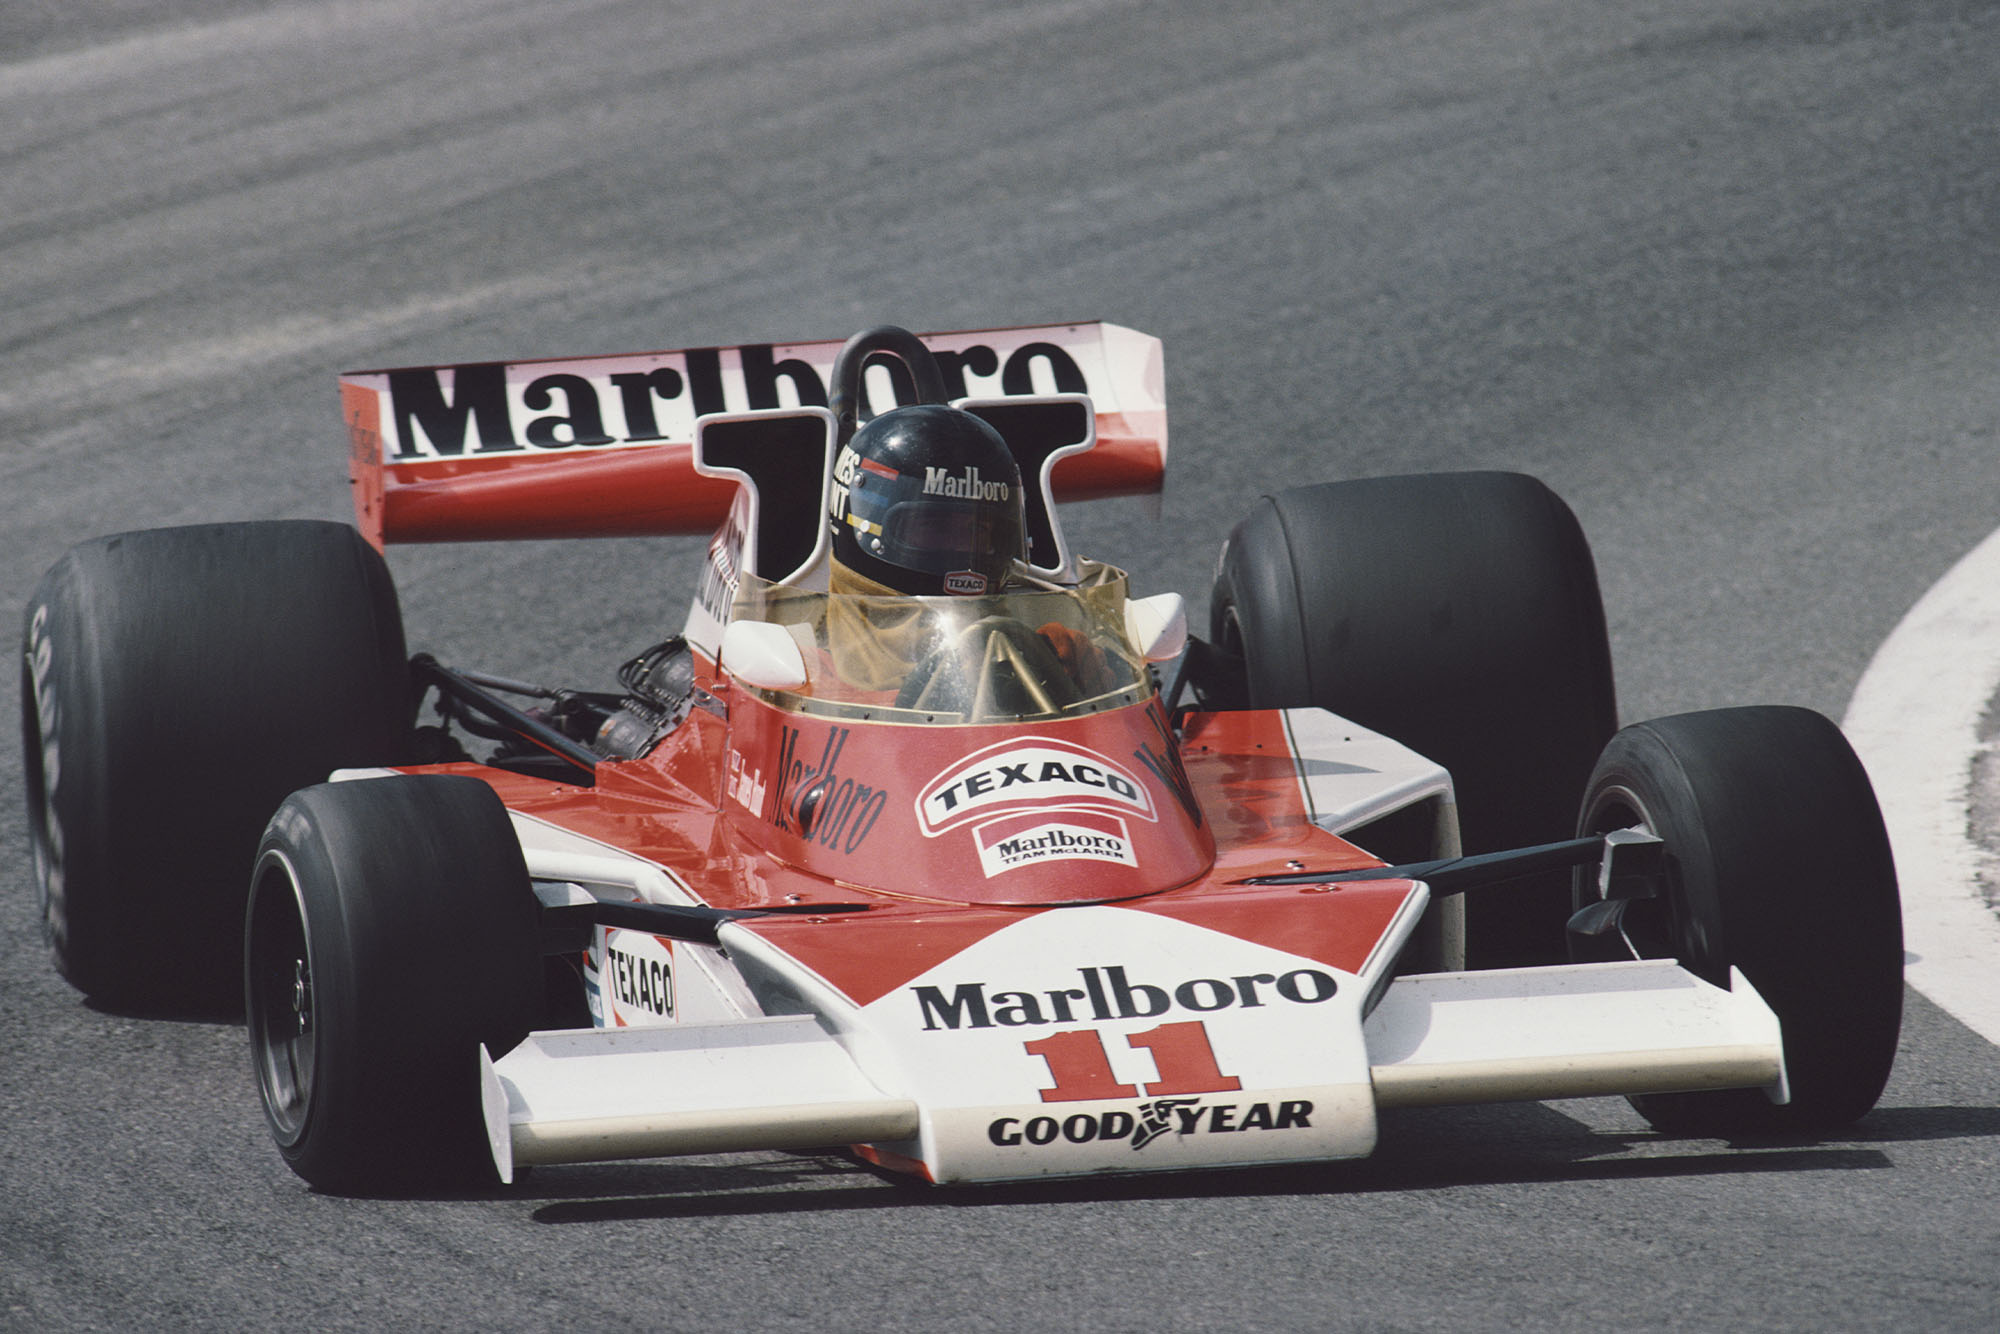 James Hunt on his way to victory at the 1976 Spanish Grand Prix.